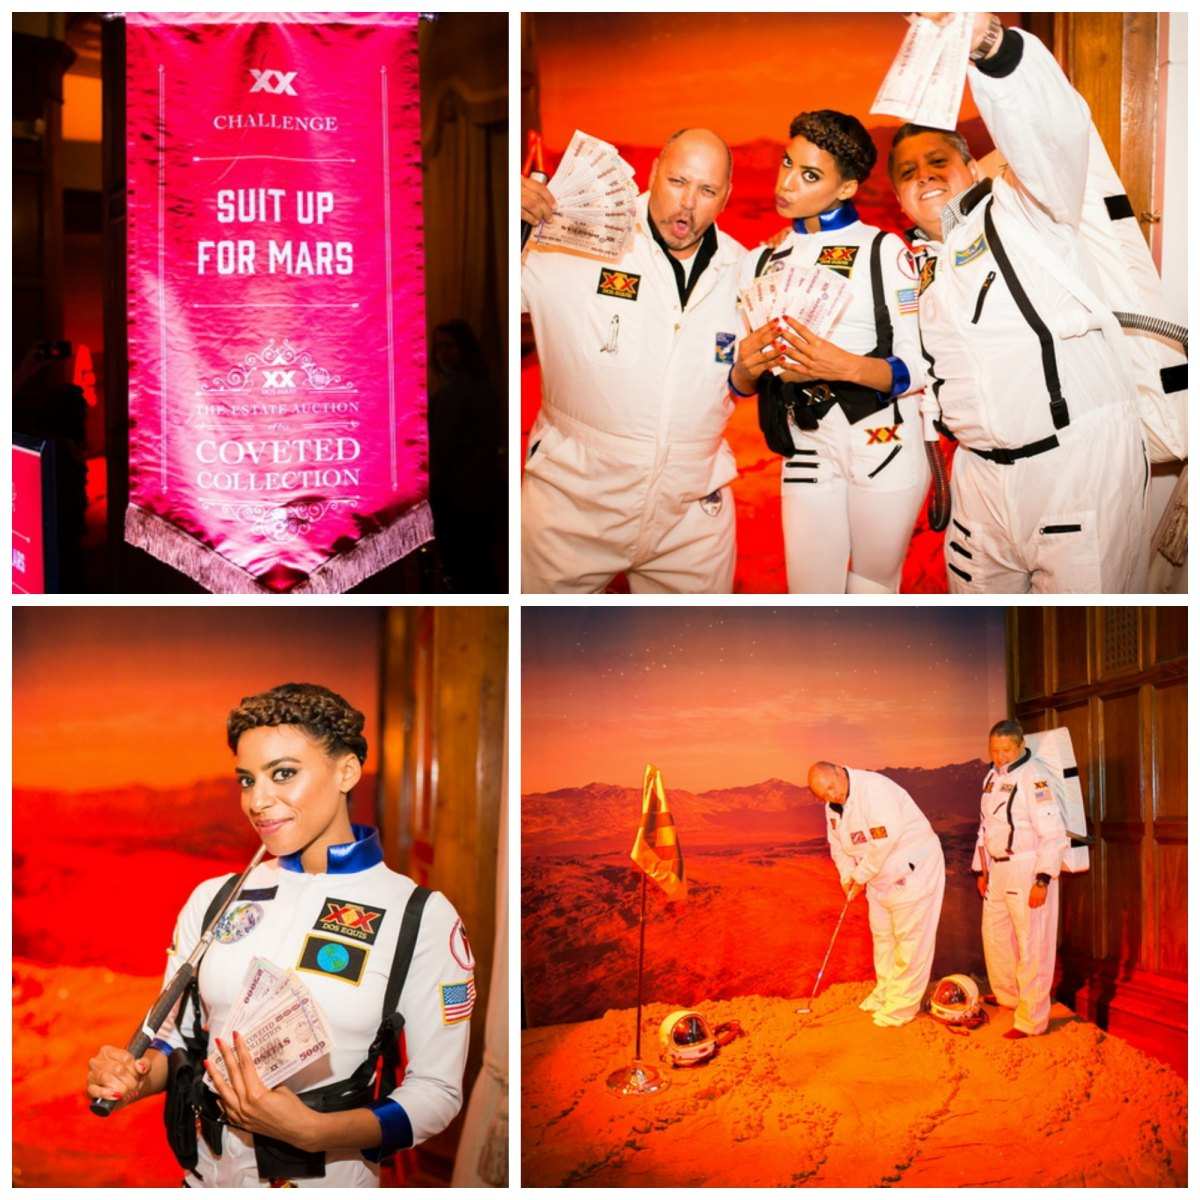 trump can keep his lame golf courses... we're putting on Mars bitches! (photos provided by Dos Equis)